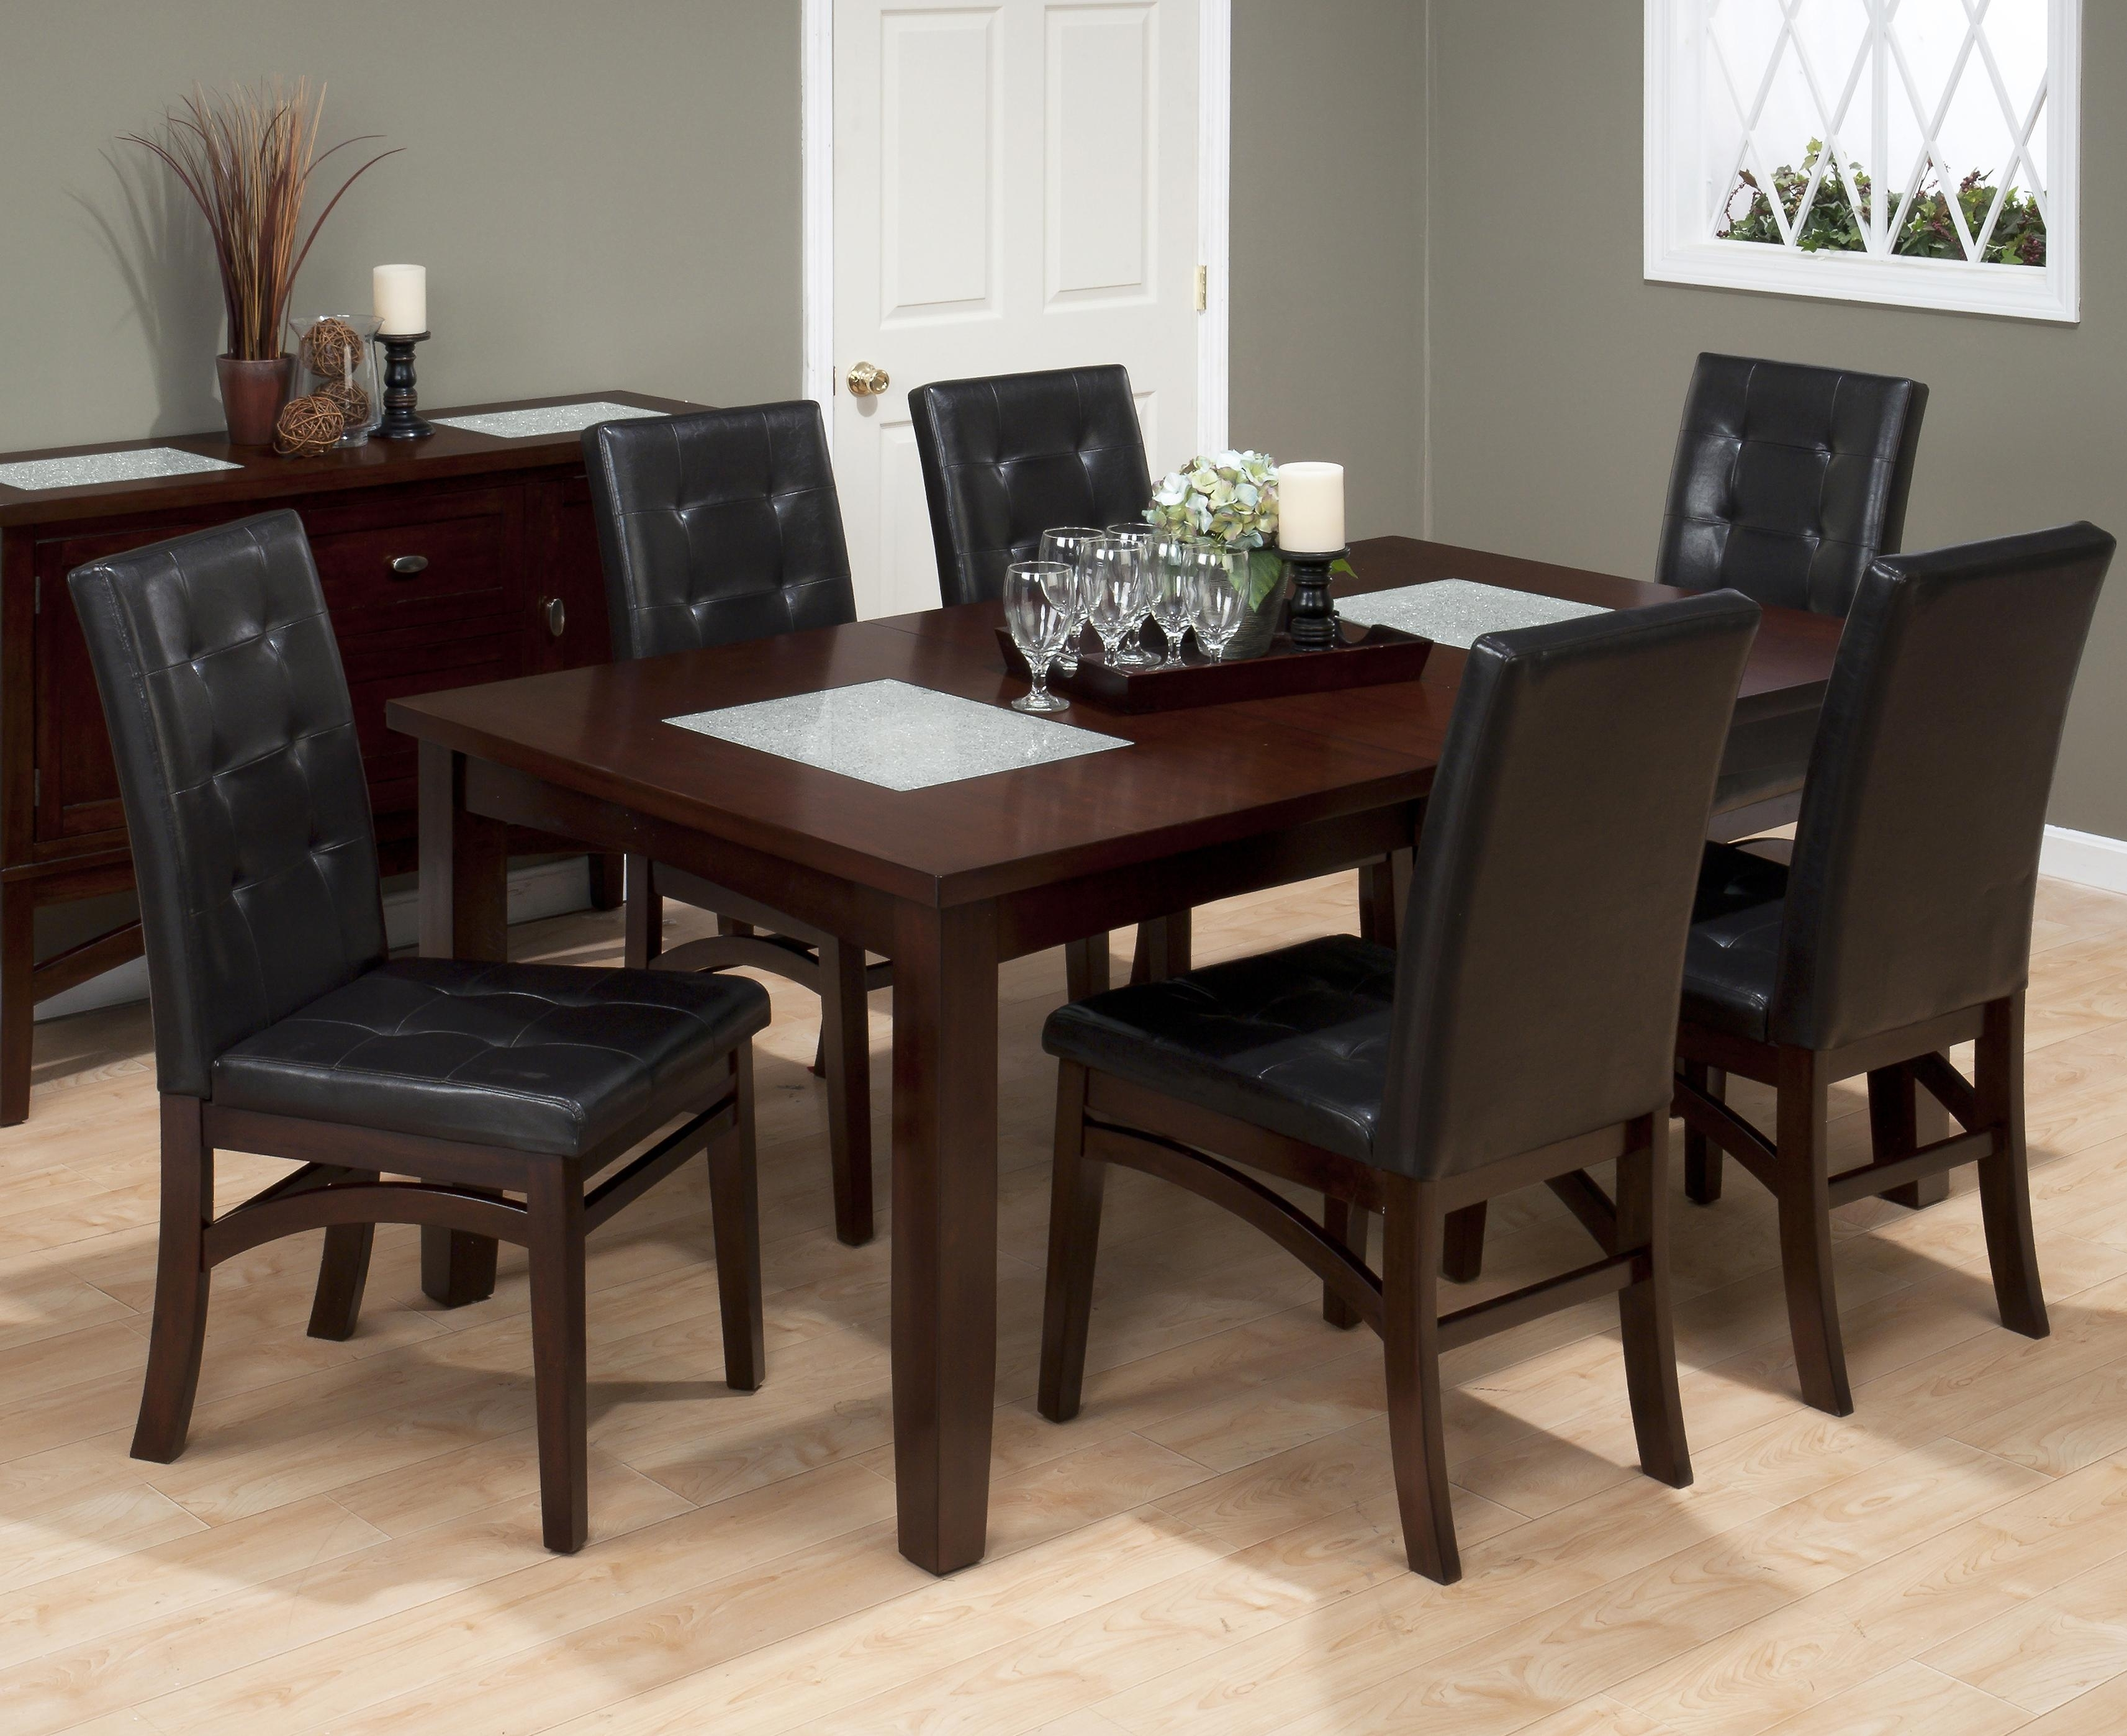 Jofran Chadwick Espresso 7 Piece Dining Set With Tufted Parson Chair Pertaining To 2018 Lindy Espresso Rectangle Dining Tables (View 19 of 20)